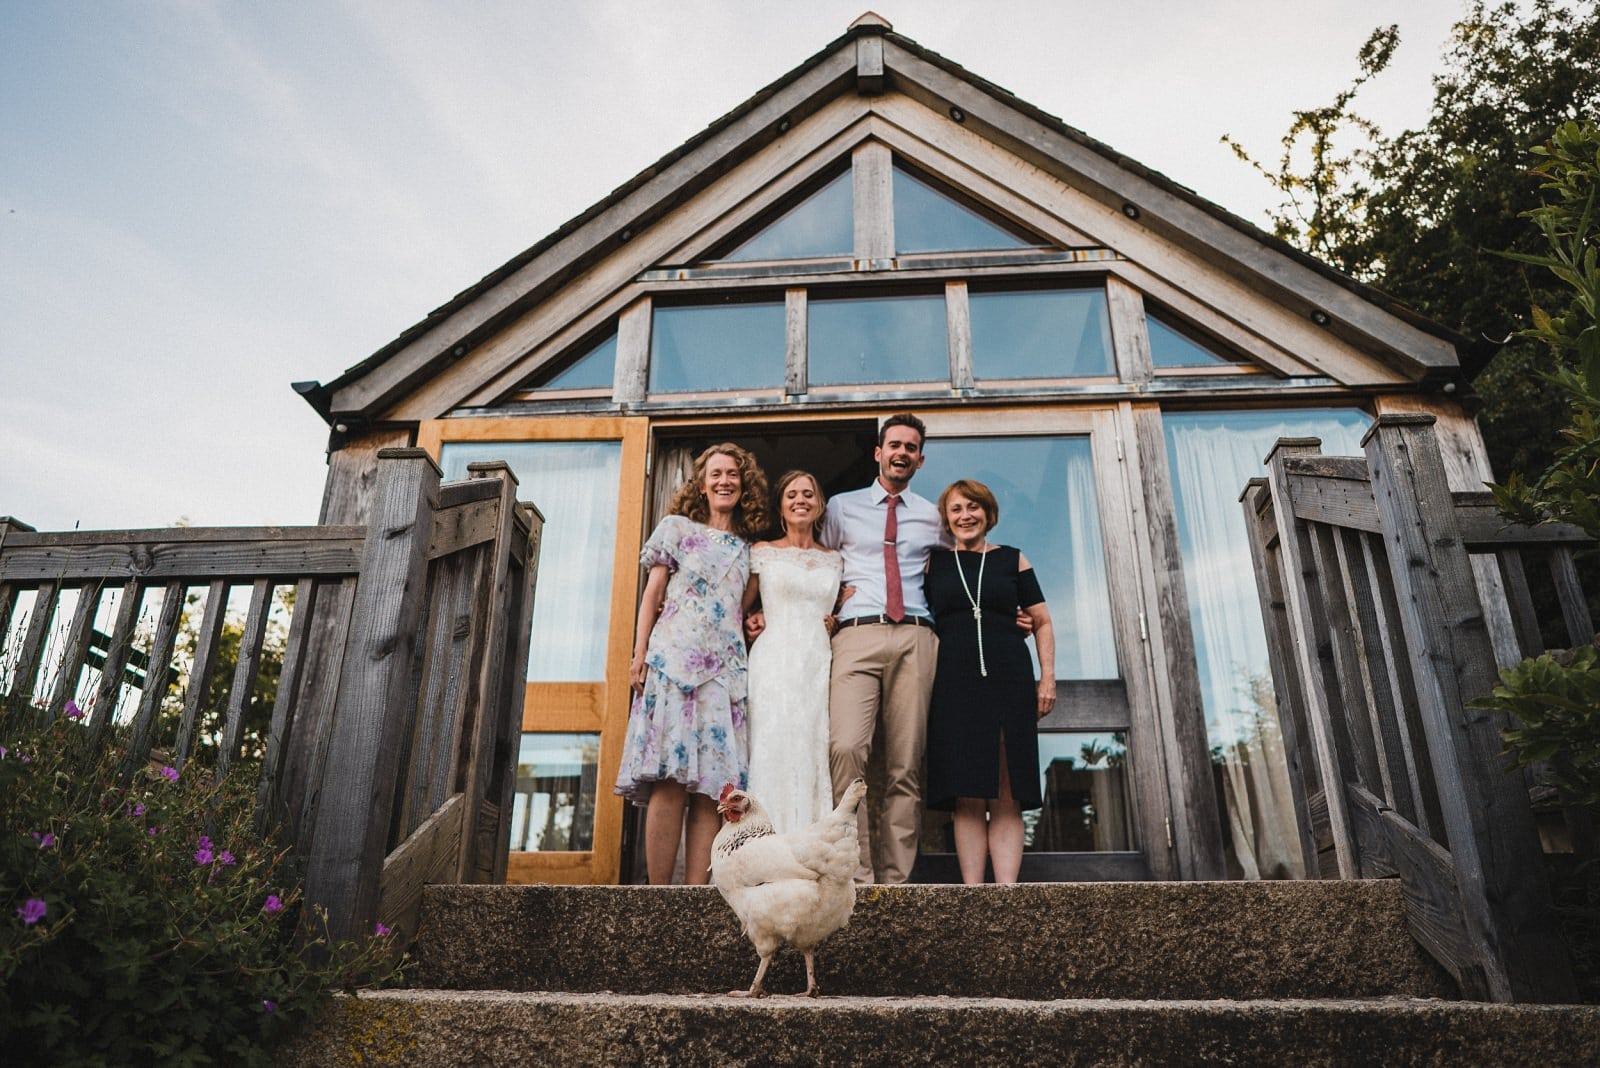 A wedding group photograph at Nancarrow Farm with a chicken stepping into the way